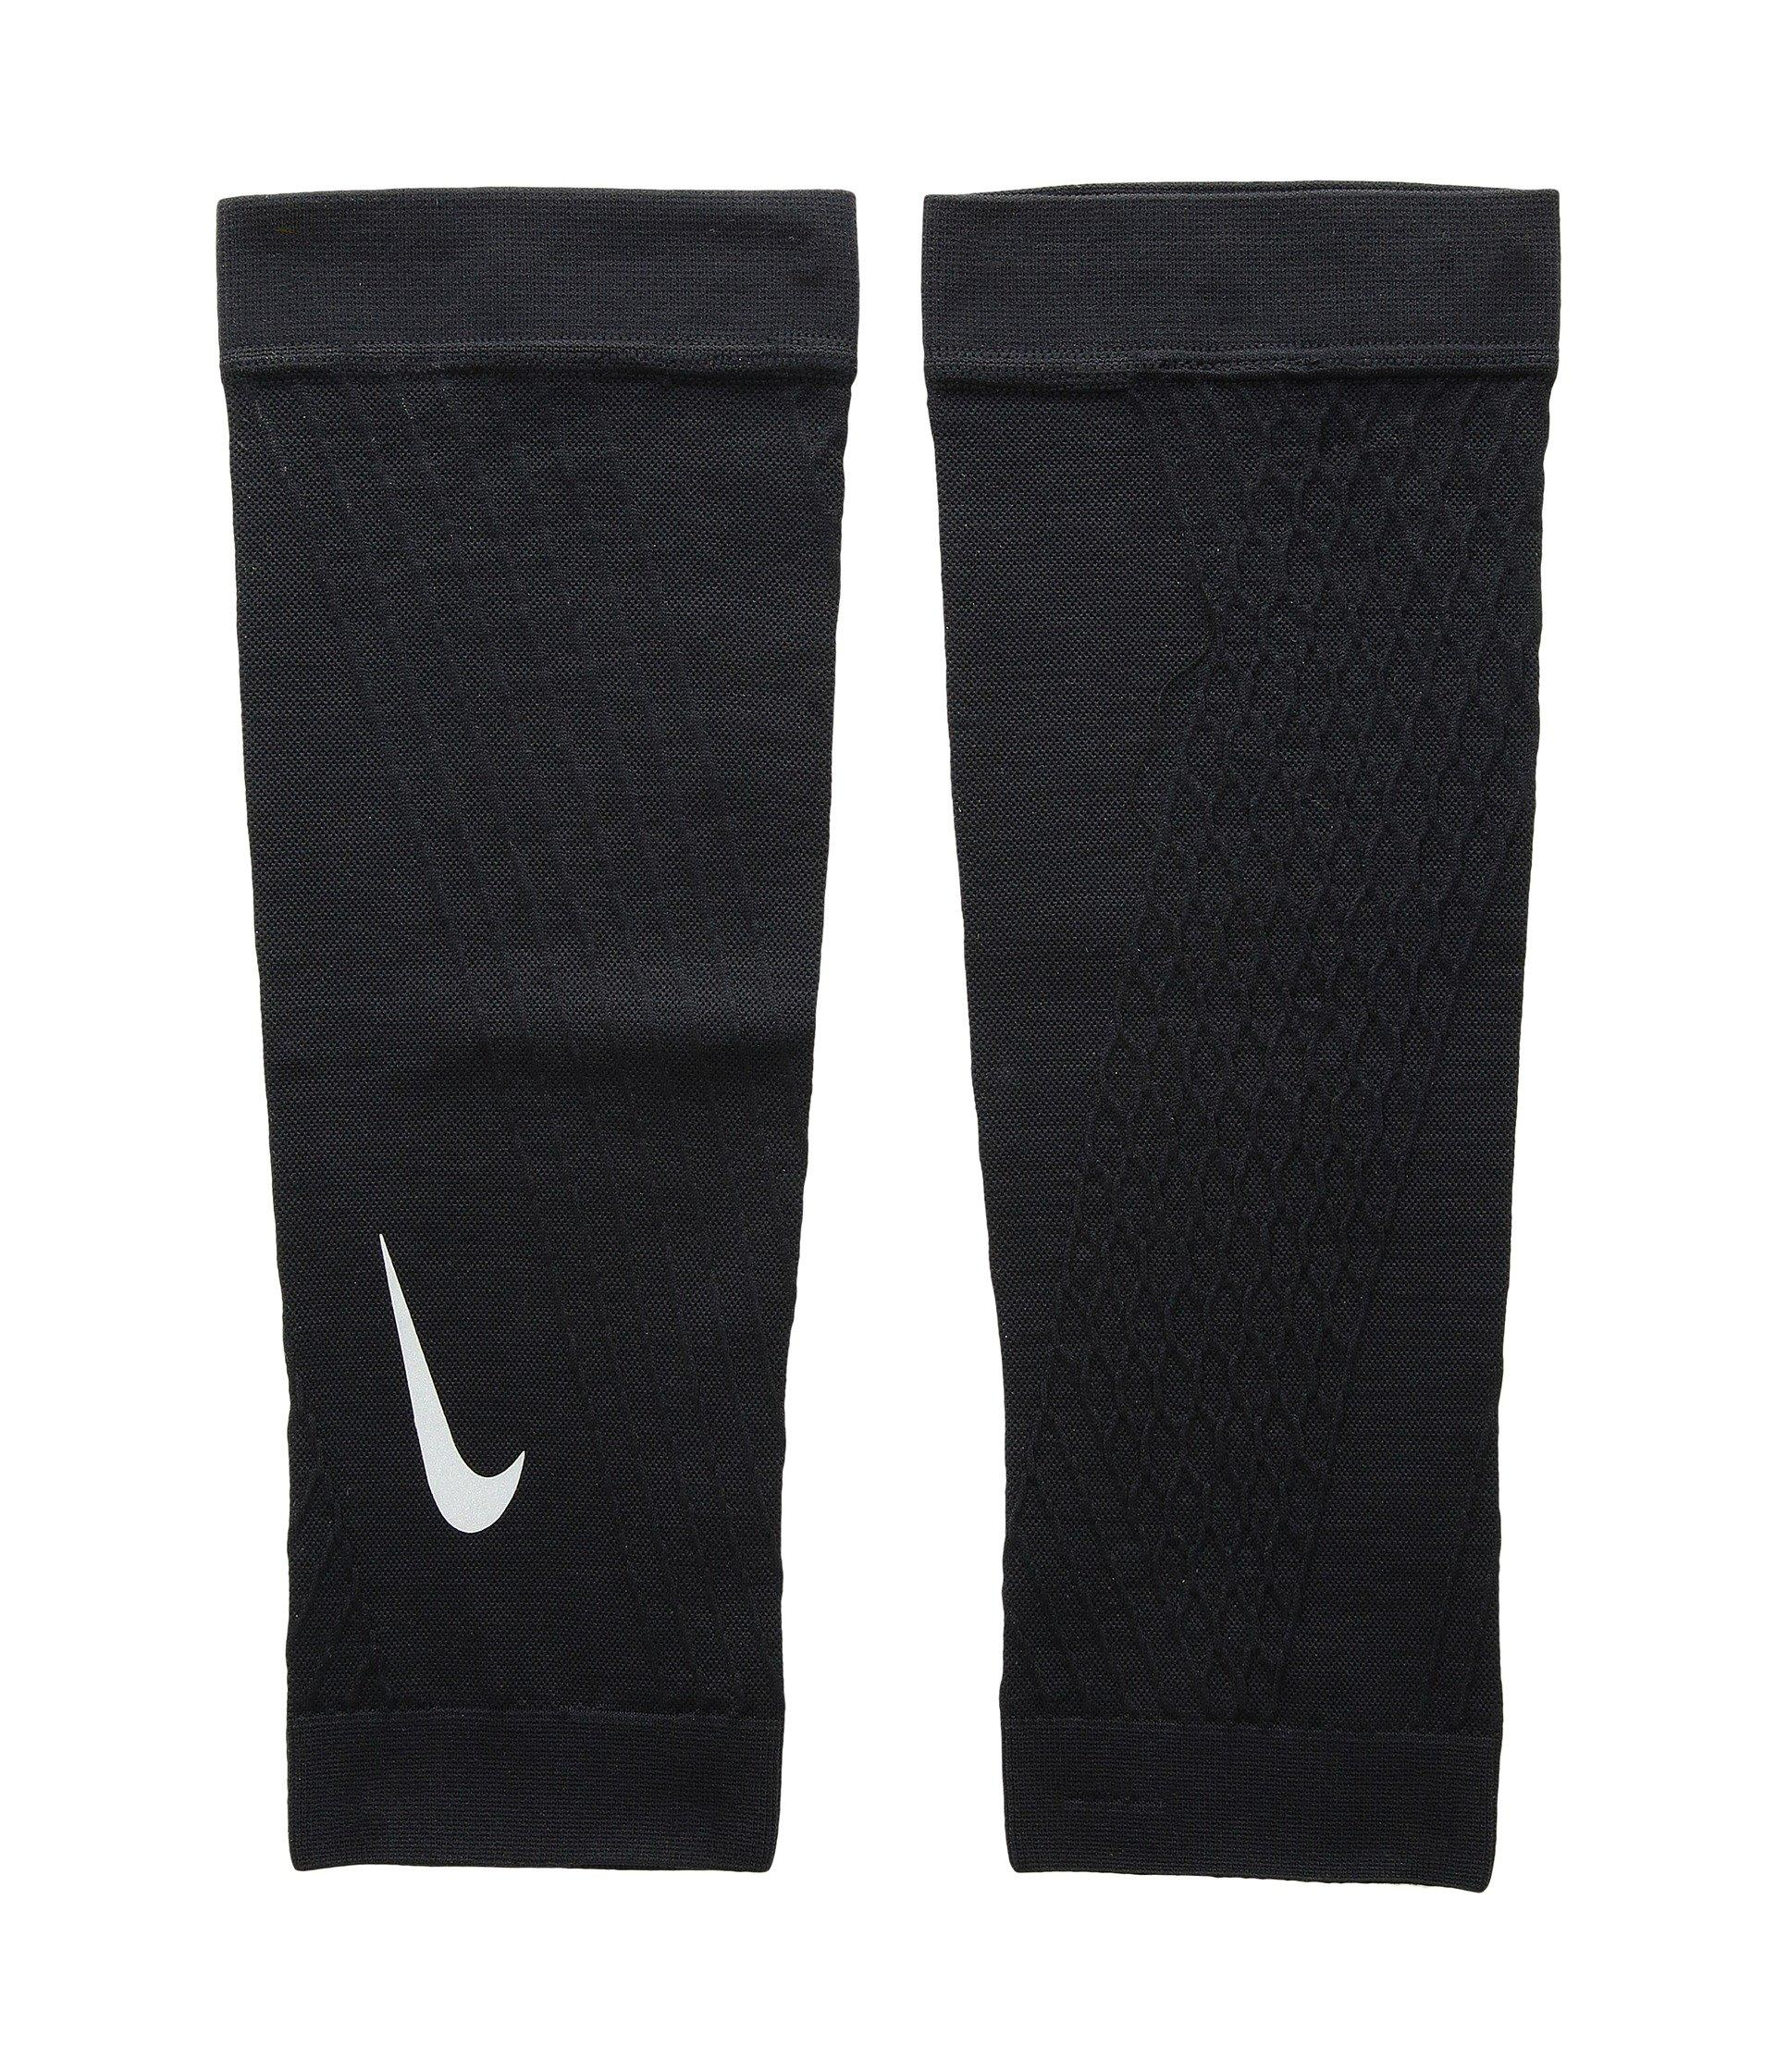 e6a9a54d3a Nike Zoned Support Calf Sleeves (black/silver) Athletic Sports ...